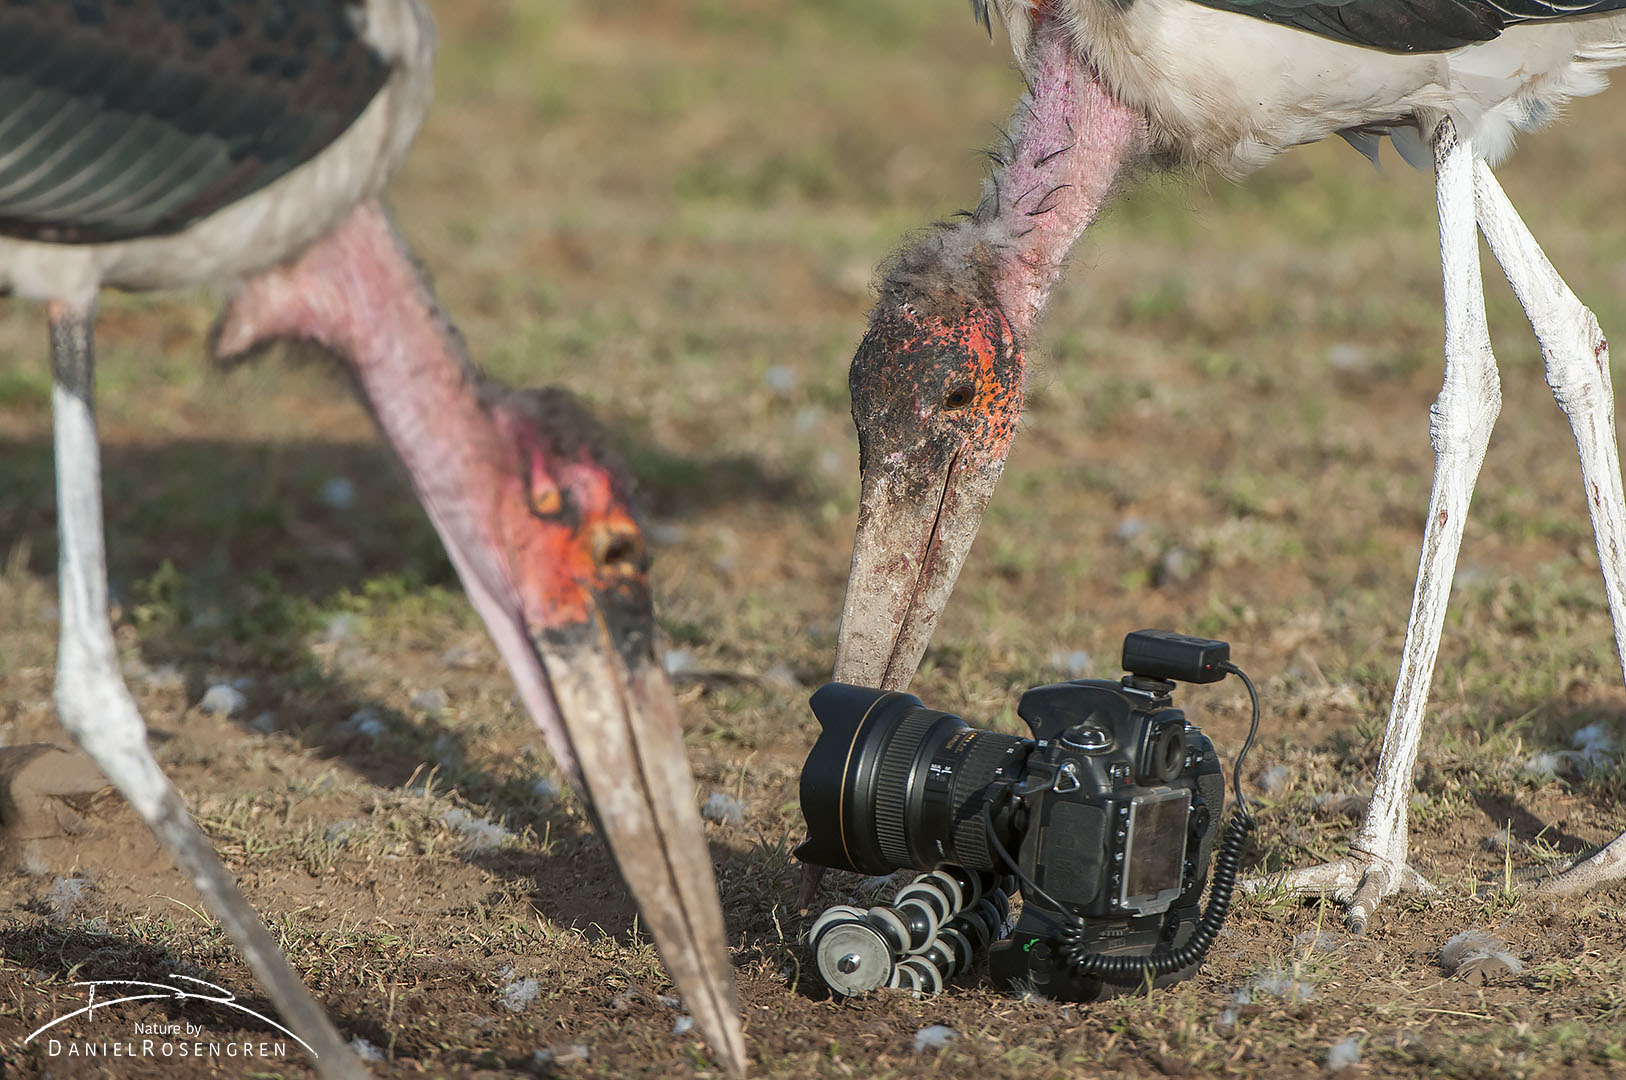 Marabou storks picking up small pieces of food around the camera. © Daniel Rosengren